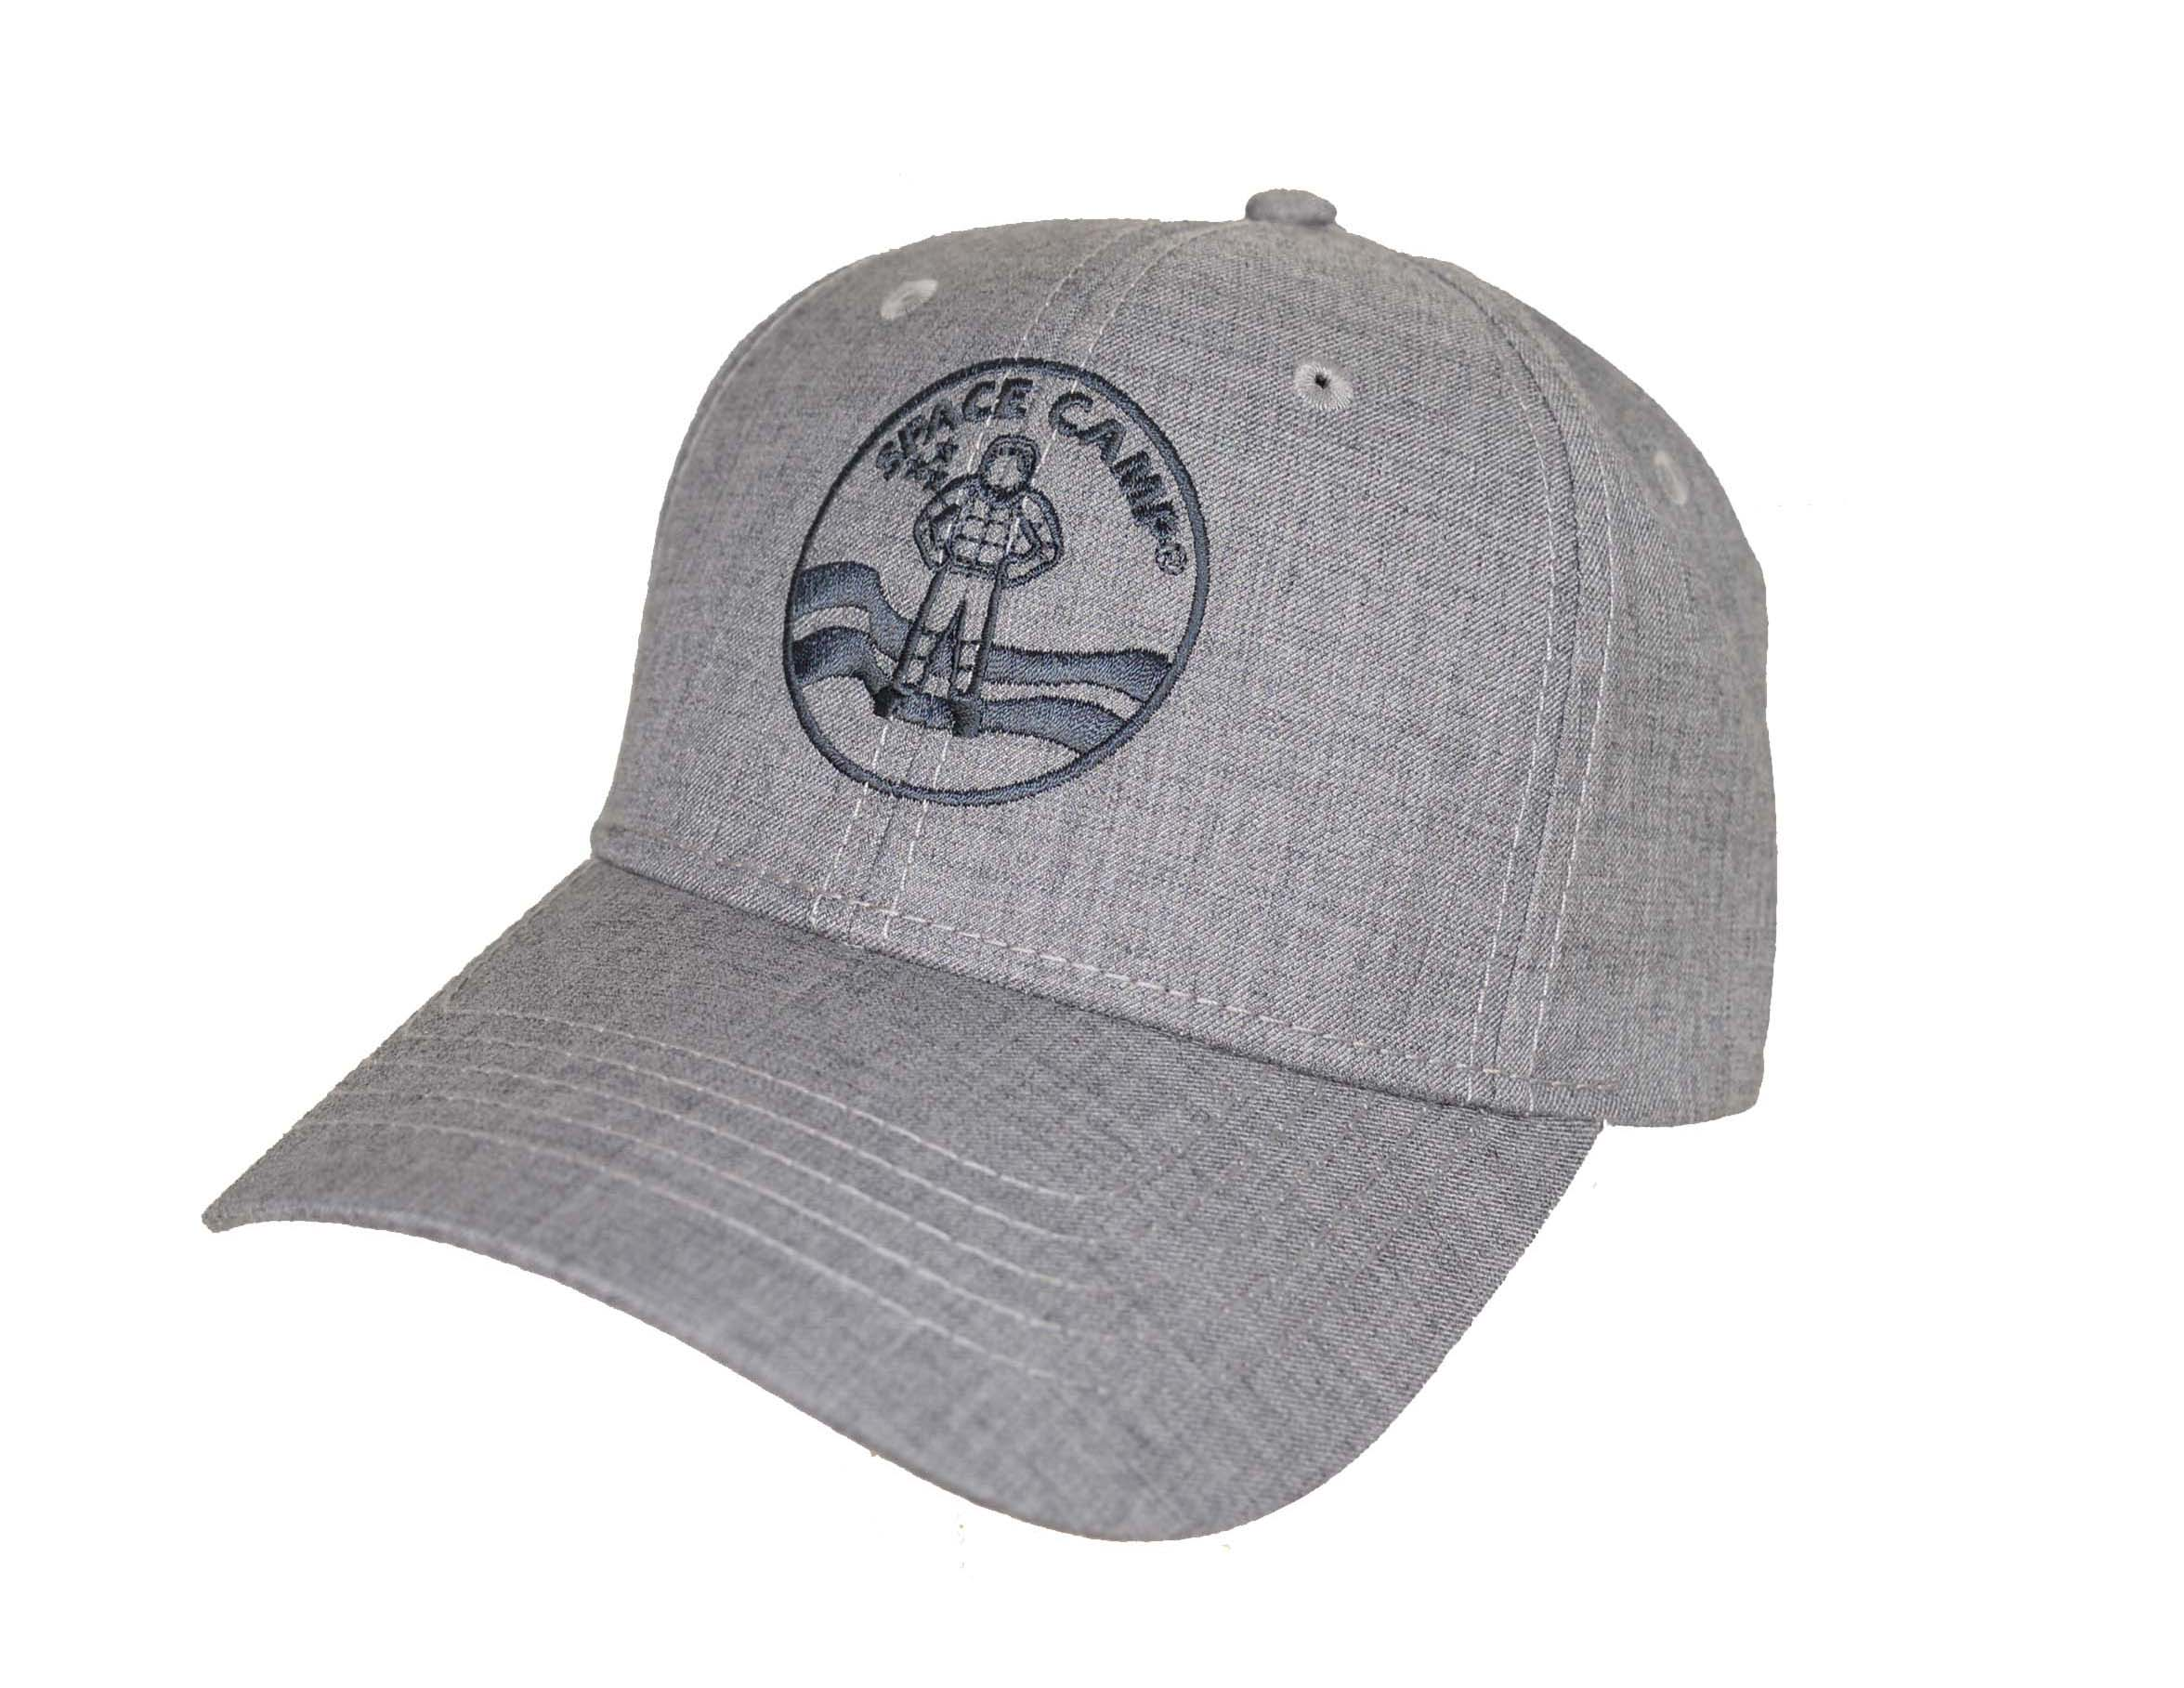 Space Camp Logo Melange Twill Cap,SPACECAMP,S110210/PH182